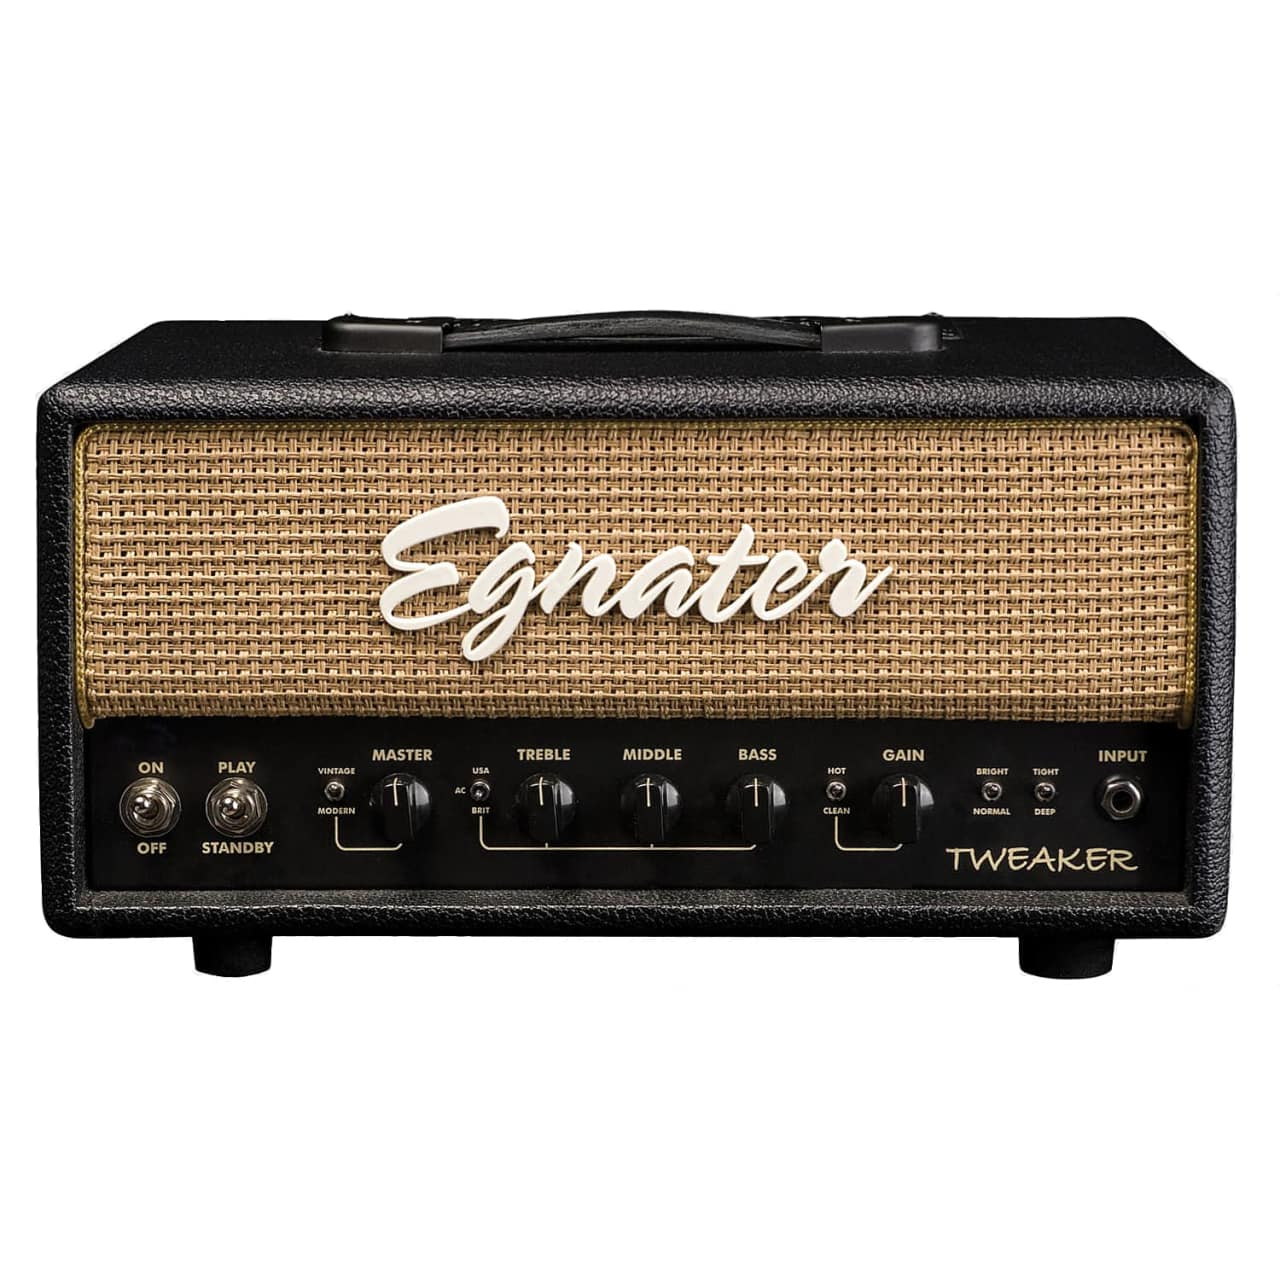 egnater tweaker guitar amplifier head 15 watts zzounds reverb. Black Bedroom Furniture Sets. Home Design Ideas